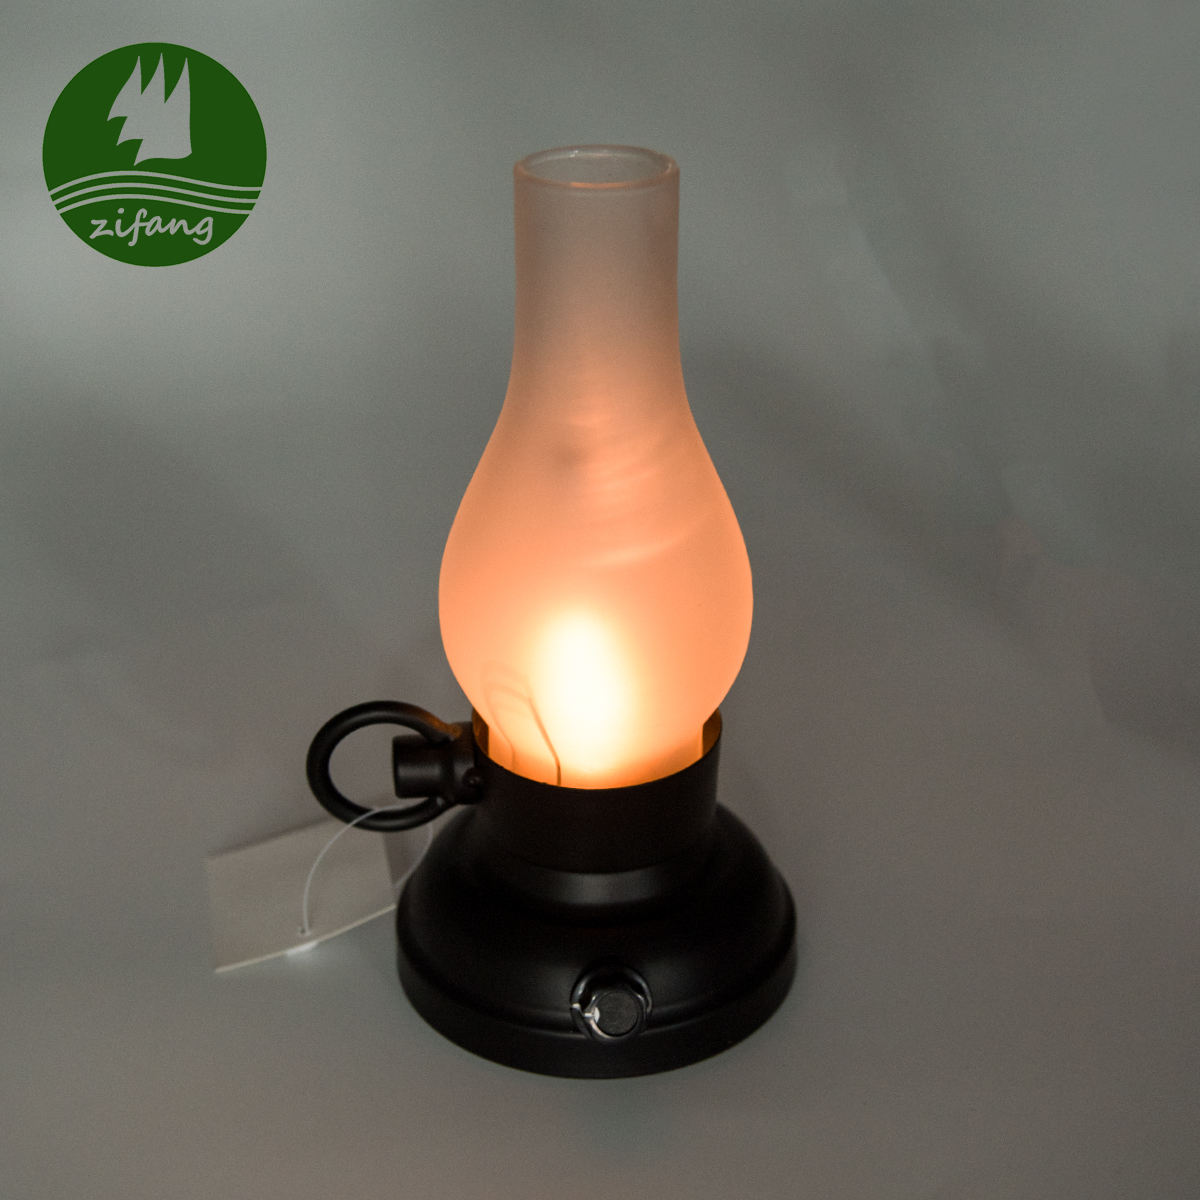 Tungsten lamp restoring ancient ways, Metal Storm Lamps Hurricane lamp